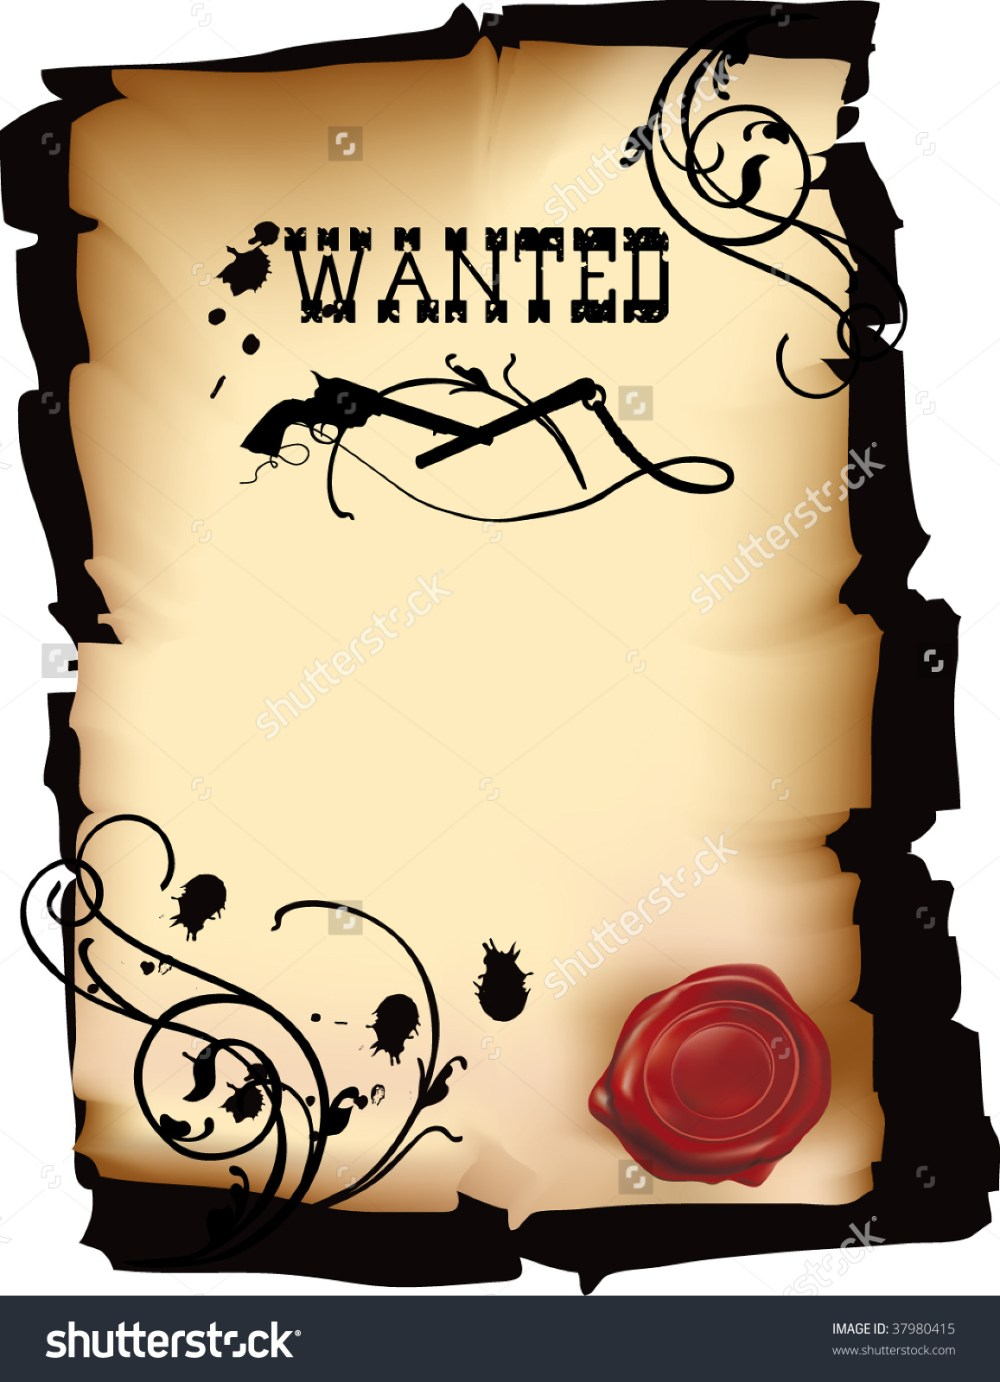 medium resolution of wild west wanted poster vector format stock vector 37980415